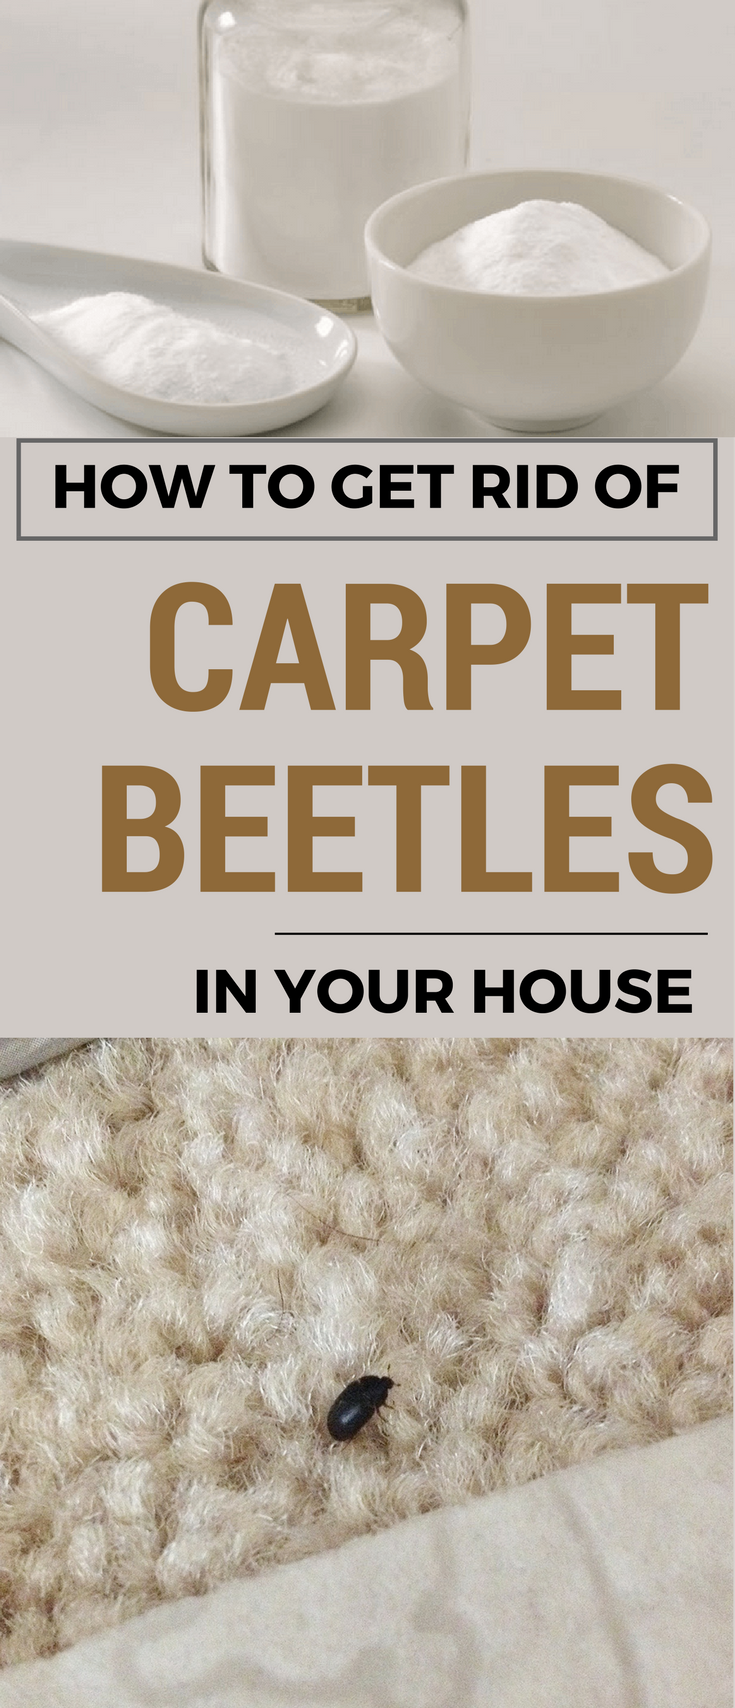 How To Get Rid Of Carpet Beetles In Your House